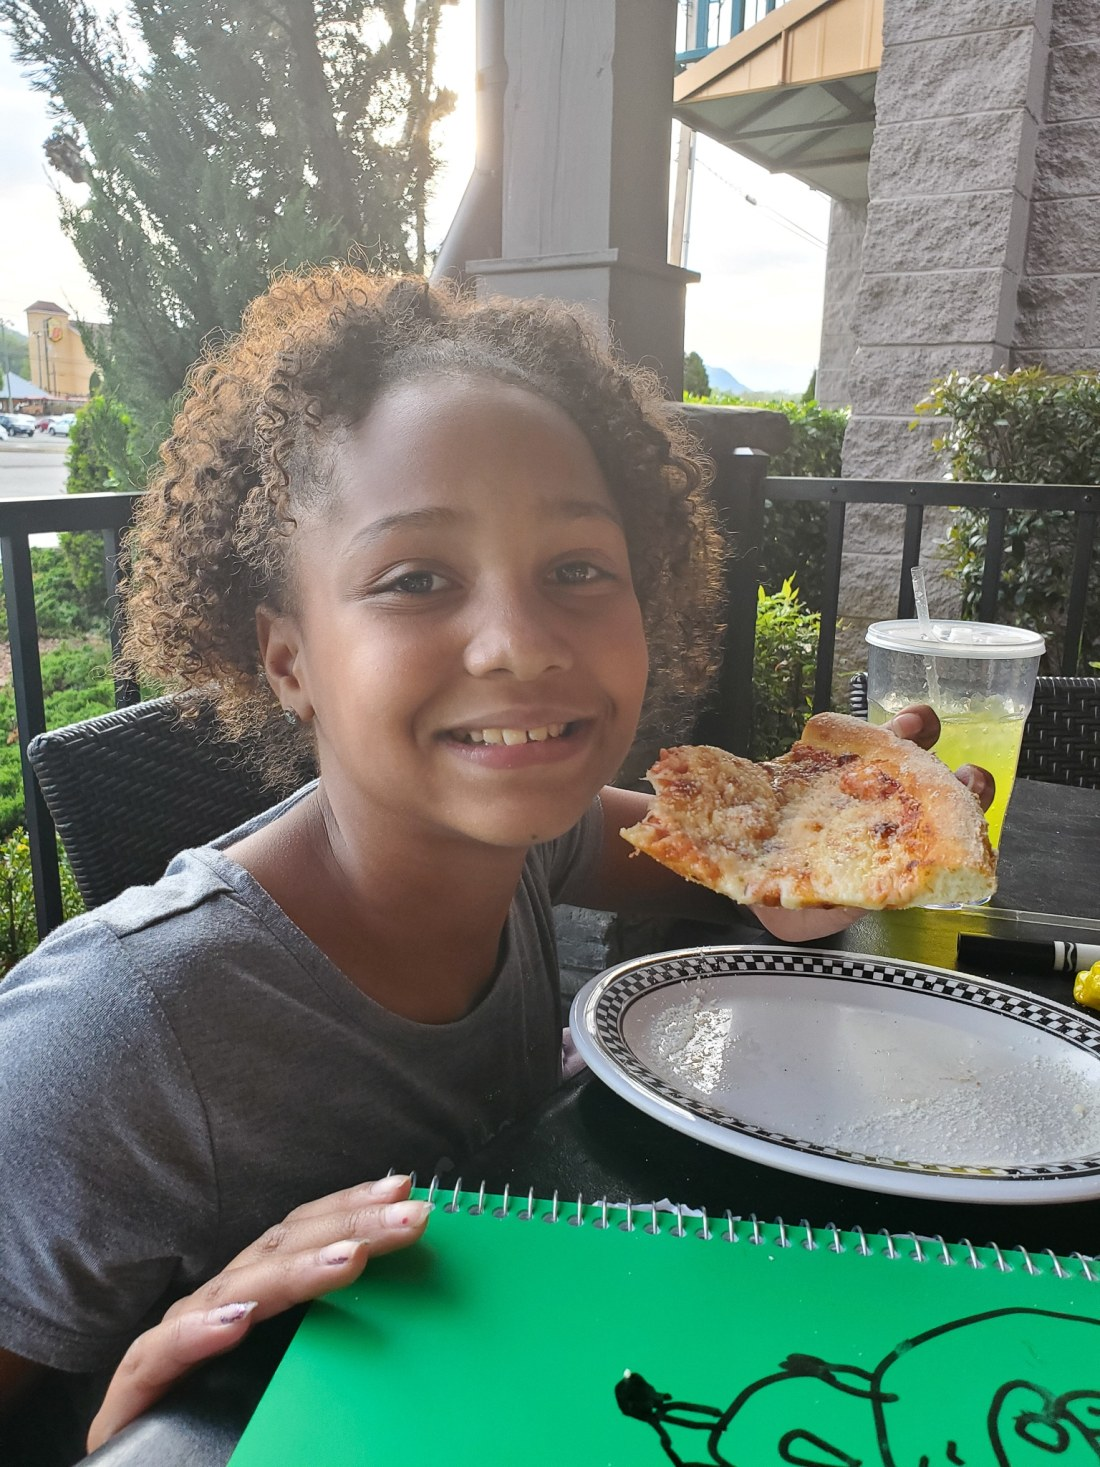 Big Daddy's Pizzeria Keturah. This is not your average pizza pie! At the heart of Big Daddy's is a 550 degree, wood-fired flame inside of a one-of-a-kind brick oven. Read all about why this freshly made pizza is my families go to pizza joint in Pigeon Forge, TN.